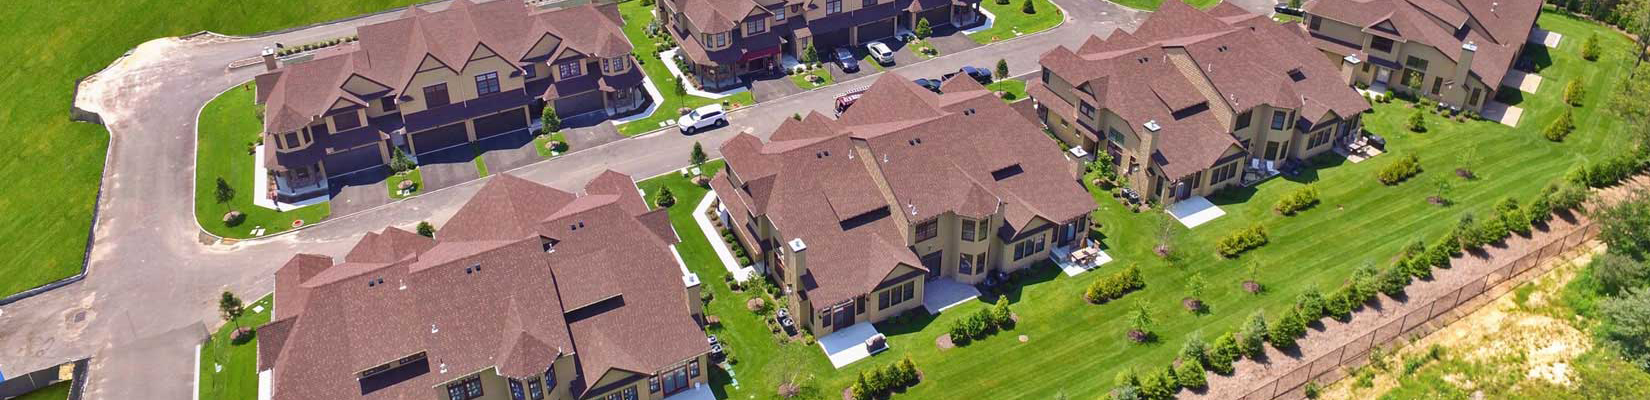 Bayport Meadow Estates The Northwind Group Townhomes